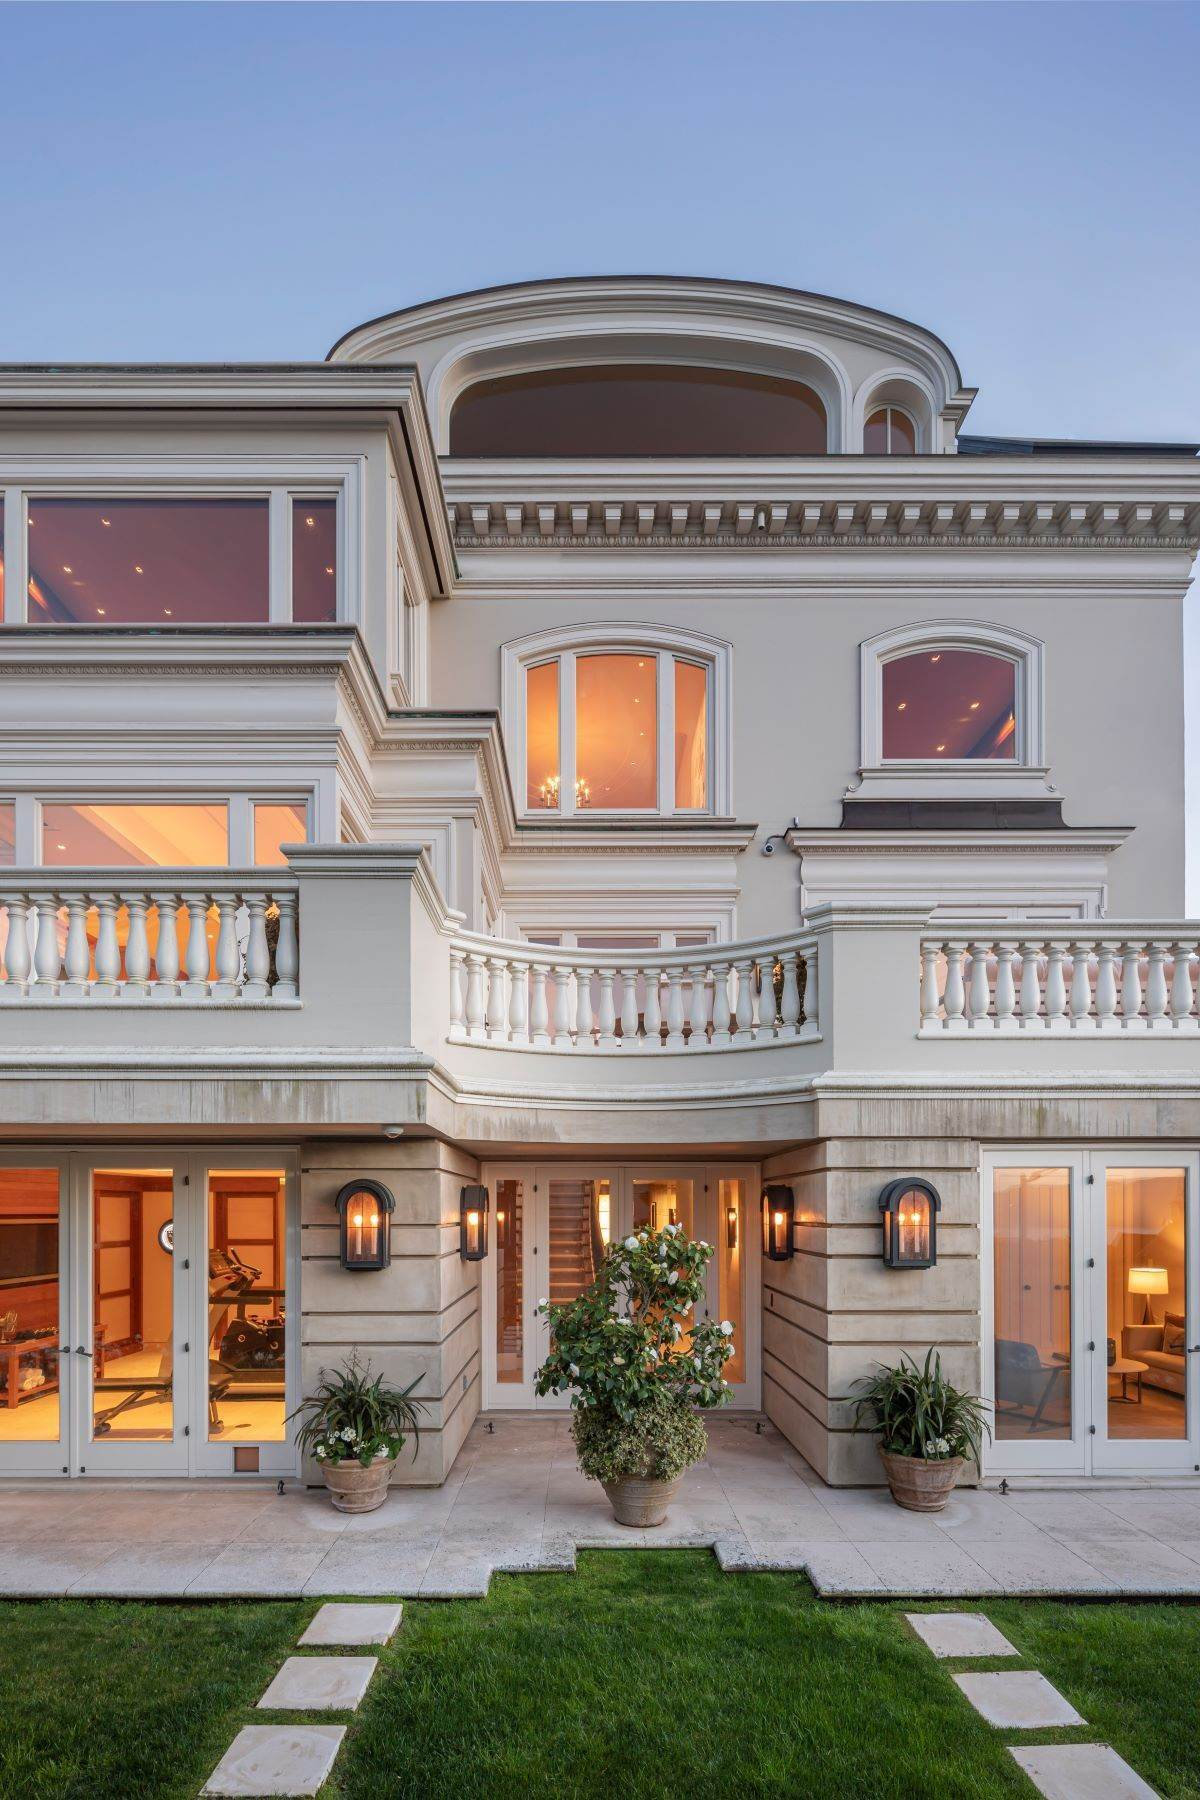 Single Family Homes for Sale at Captivating Views and Timeless Luxury 2590 Green St San Francisco, California 94123 United States